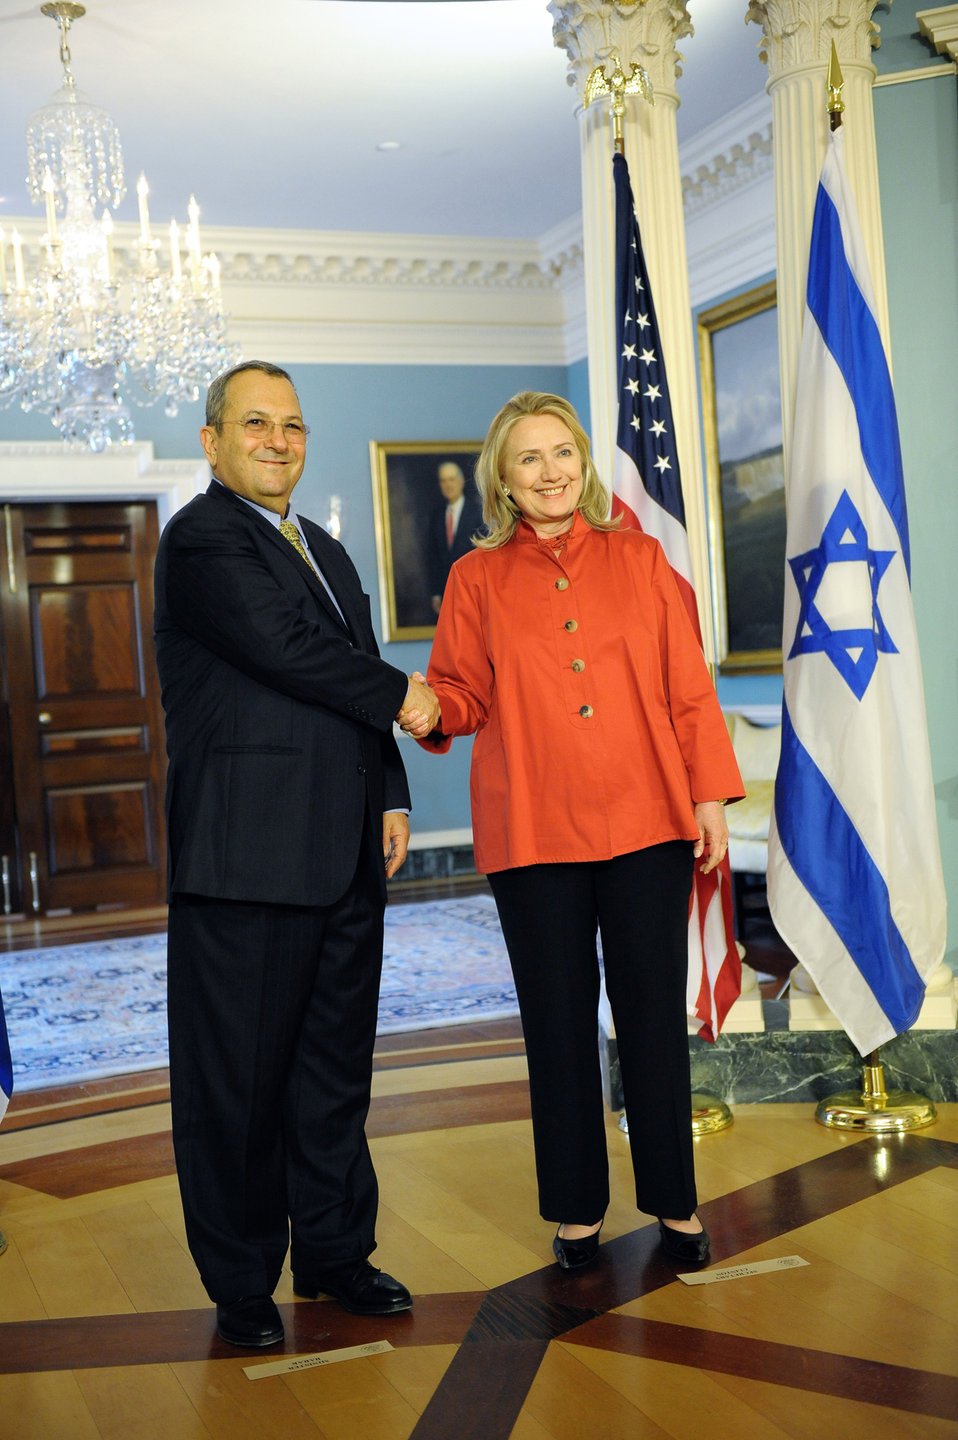 Secretary Clinton Meets With Israeli Defense Minister Barak